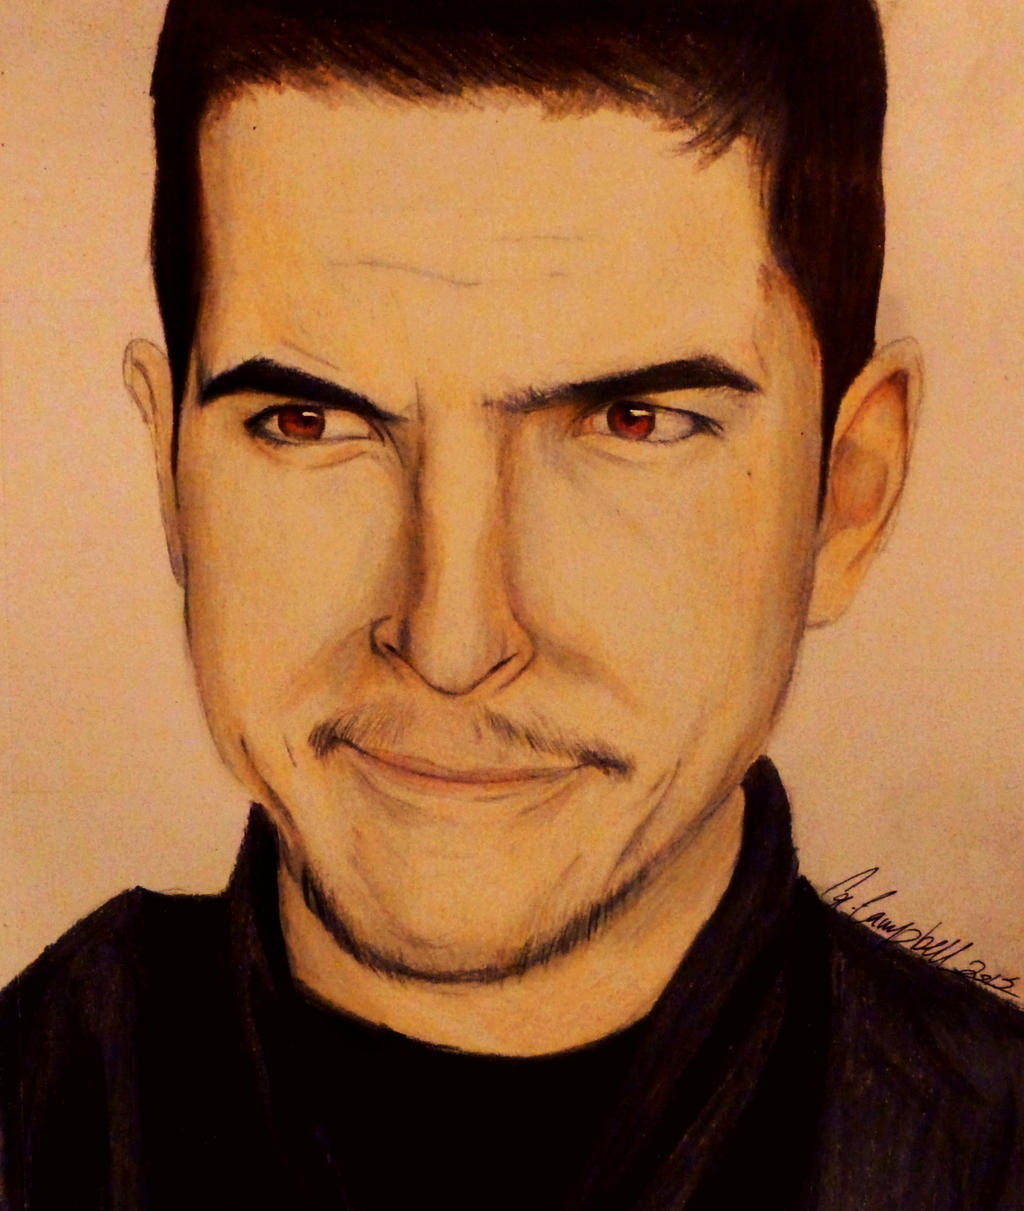 immortalhd drawing - photo #34